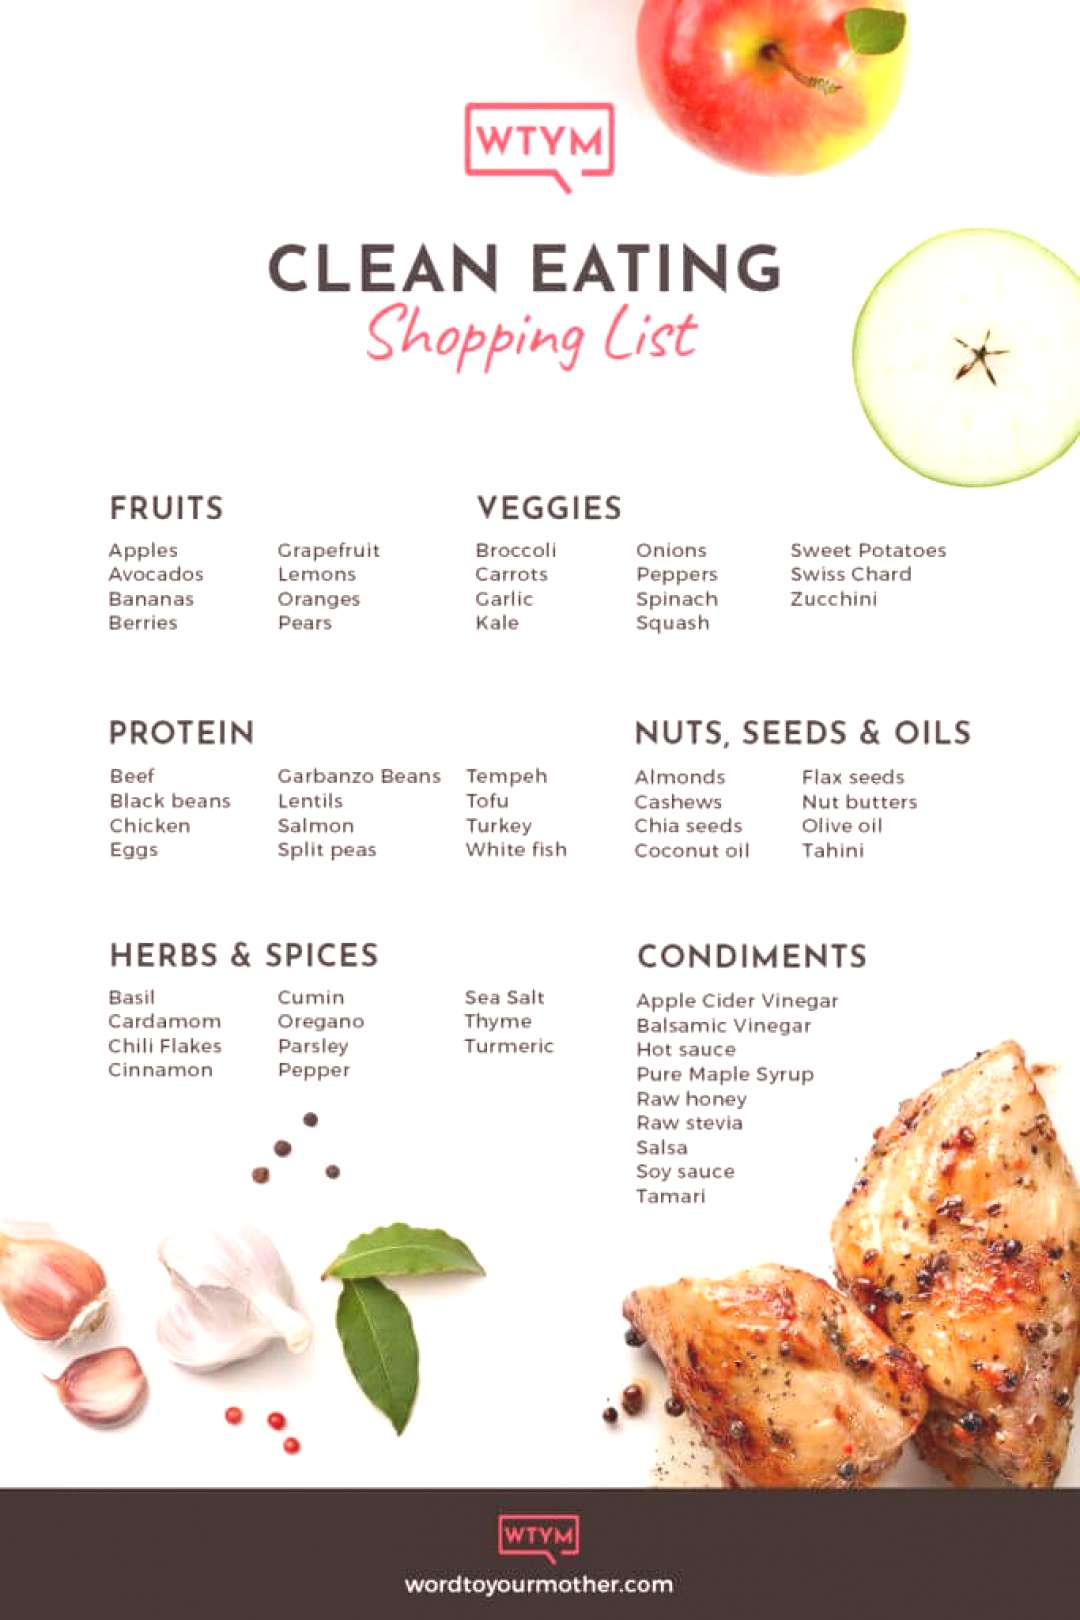 Clean Eating Shopping List for Beginners! Ultimate guide to clean eating with shopping lists, tips,